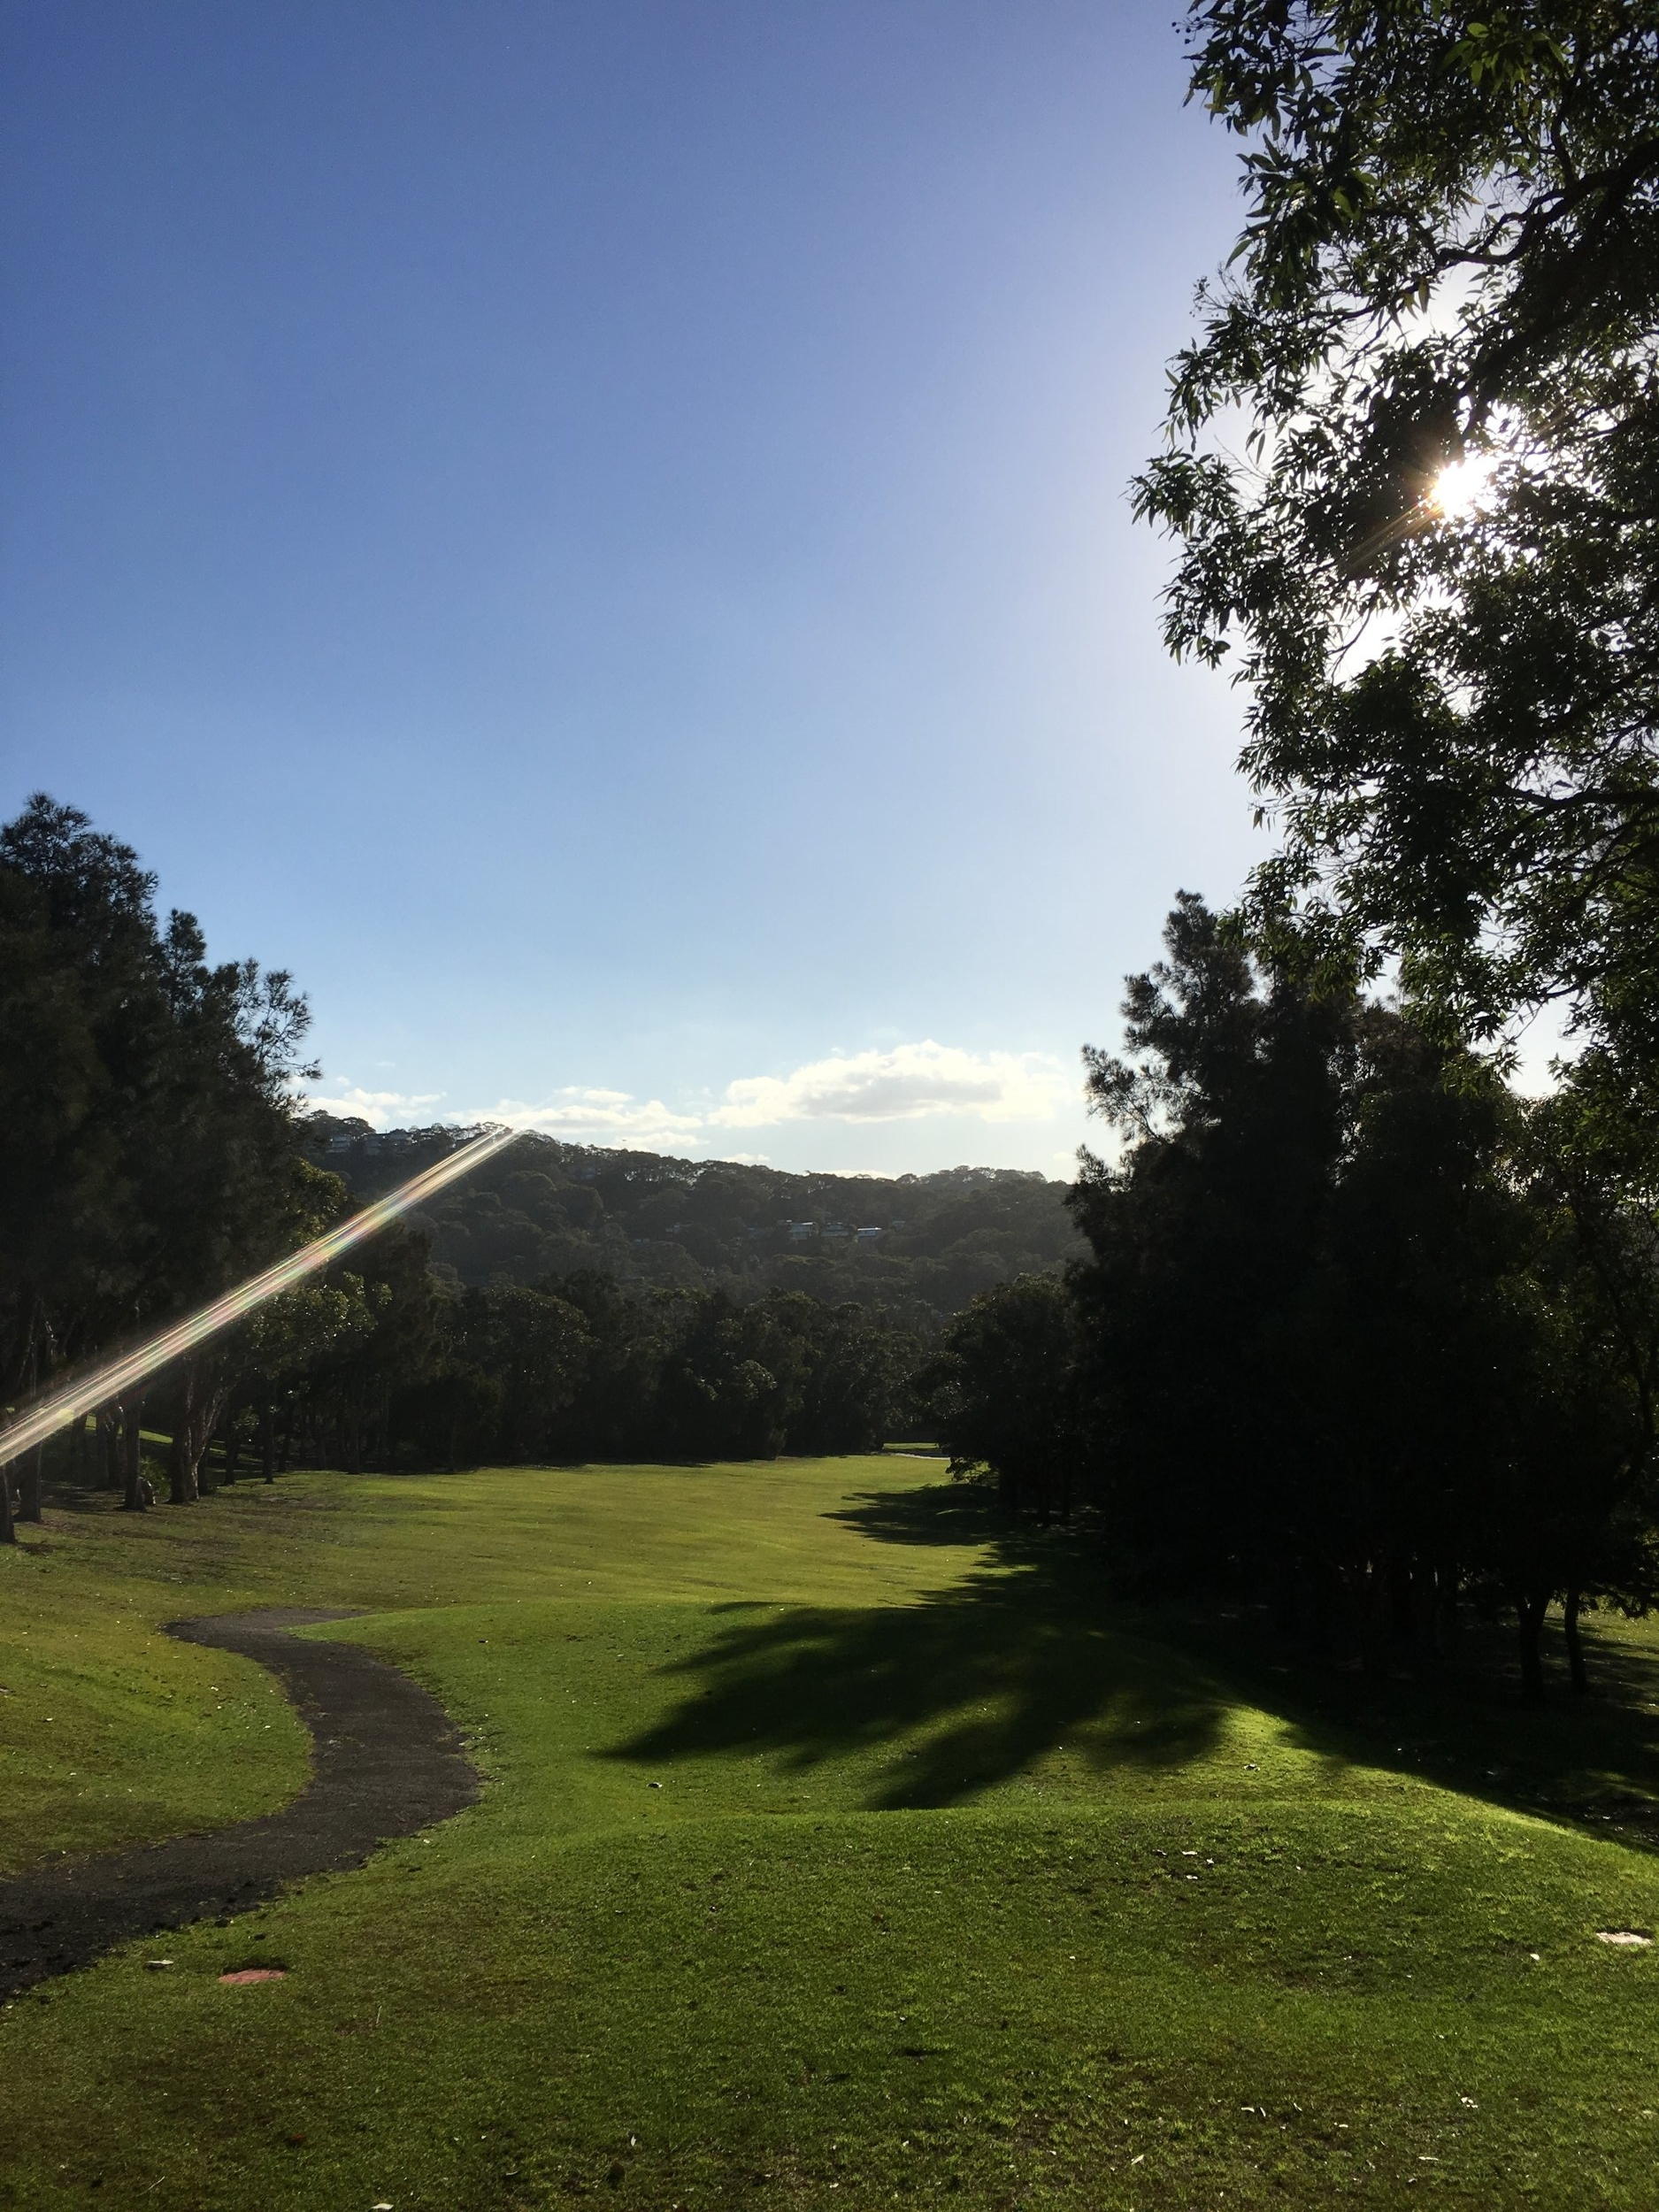 Hole Seven - PAR 4 - 285 metresThis hole begins with a great elevated tee shot to a fairway that slopes left to right. Golfer get lots of help from the downhill fairway, so aim a little left and let the fairway do its job. The 2nd shot is a tough one to a green that rolls severely from front to back.